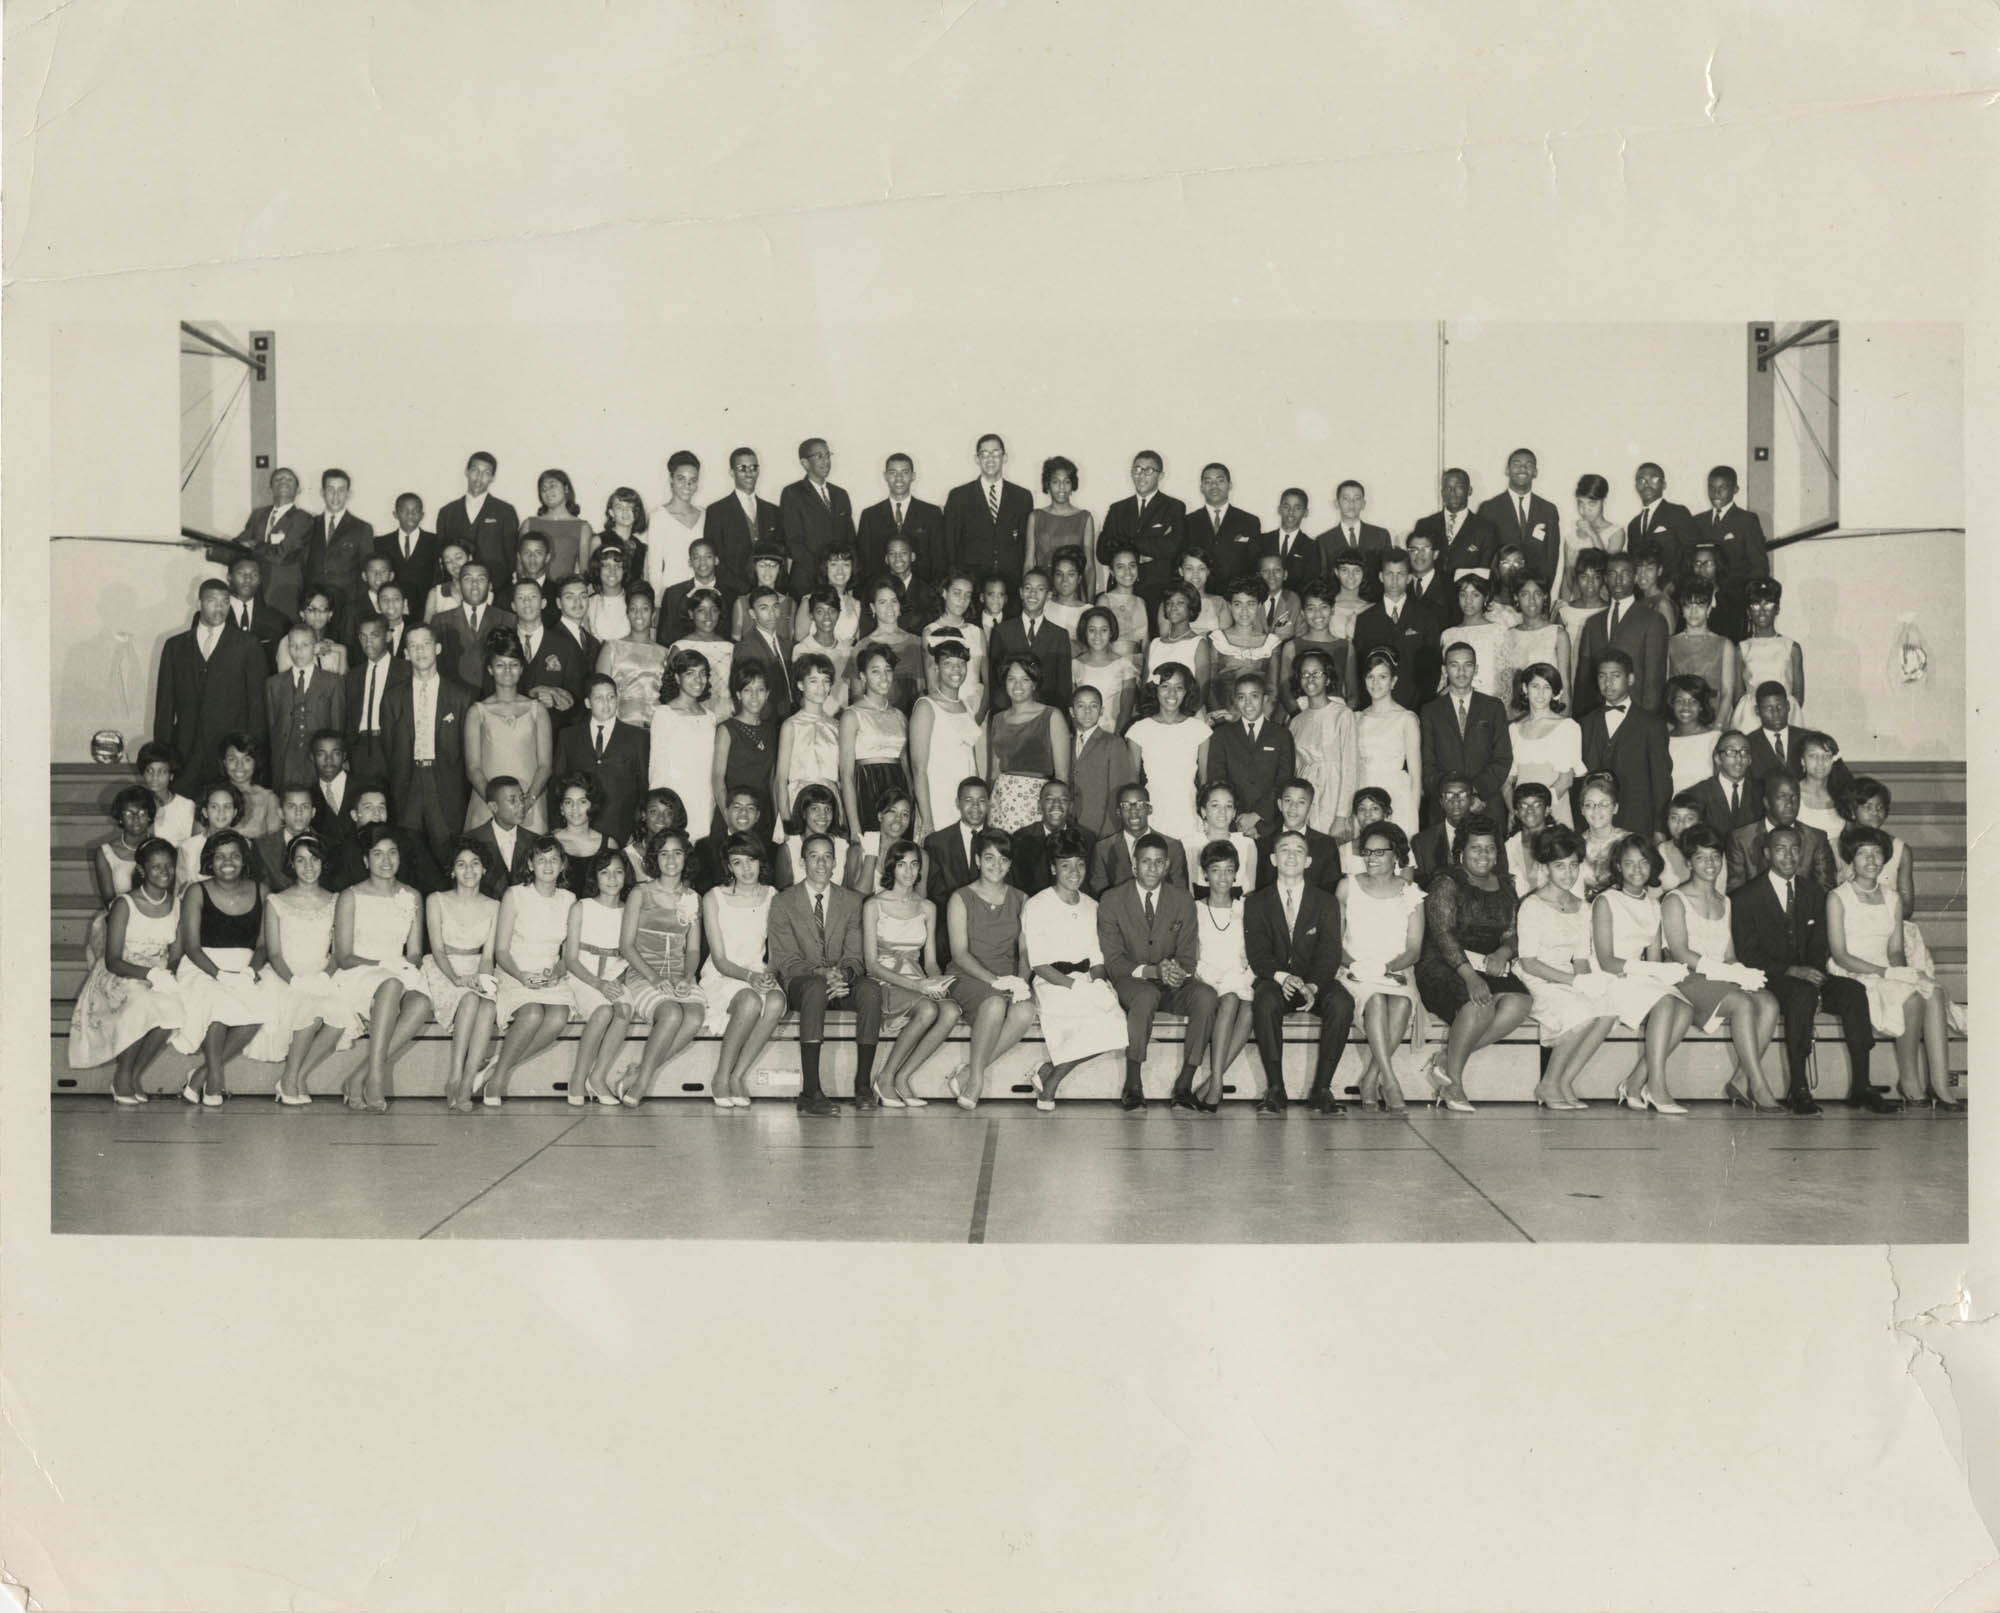 Photograph of Graduating Class